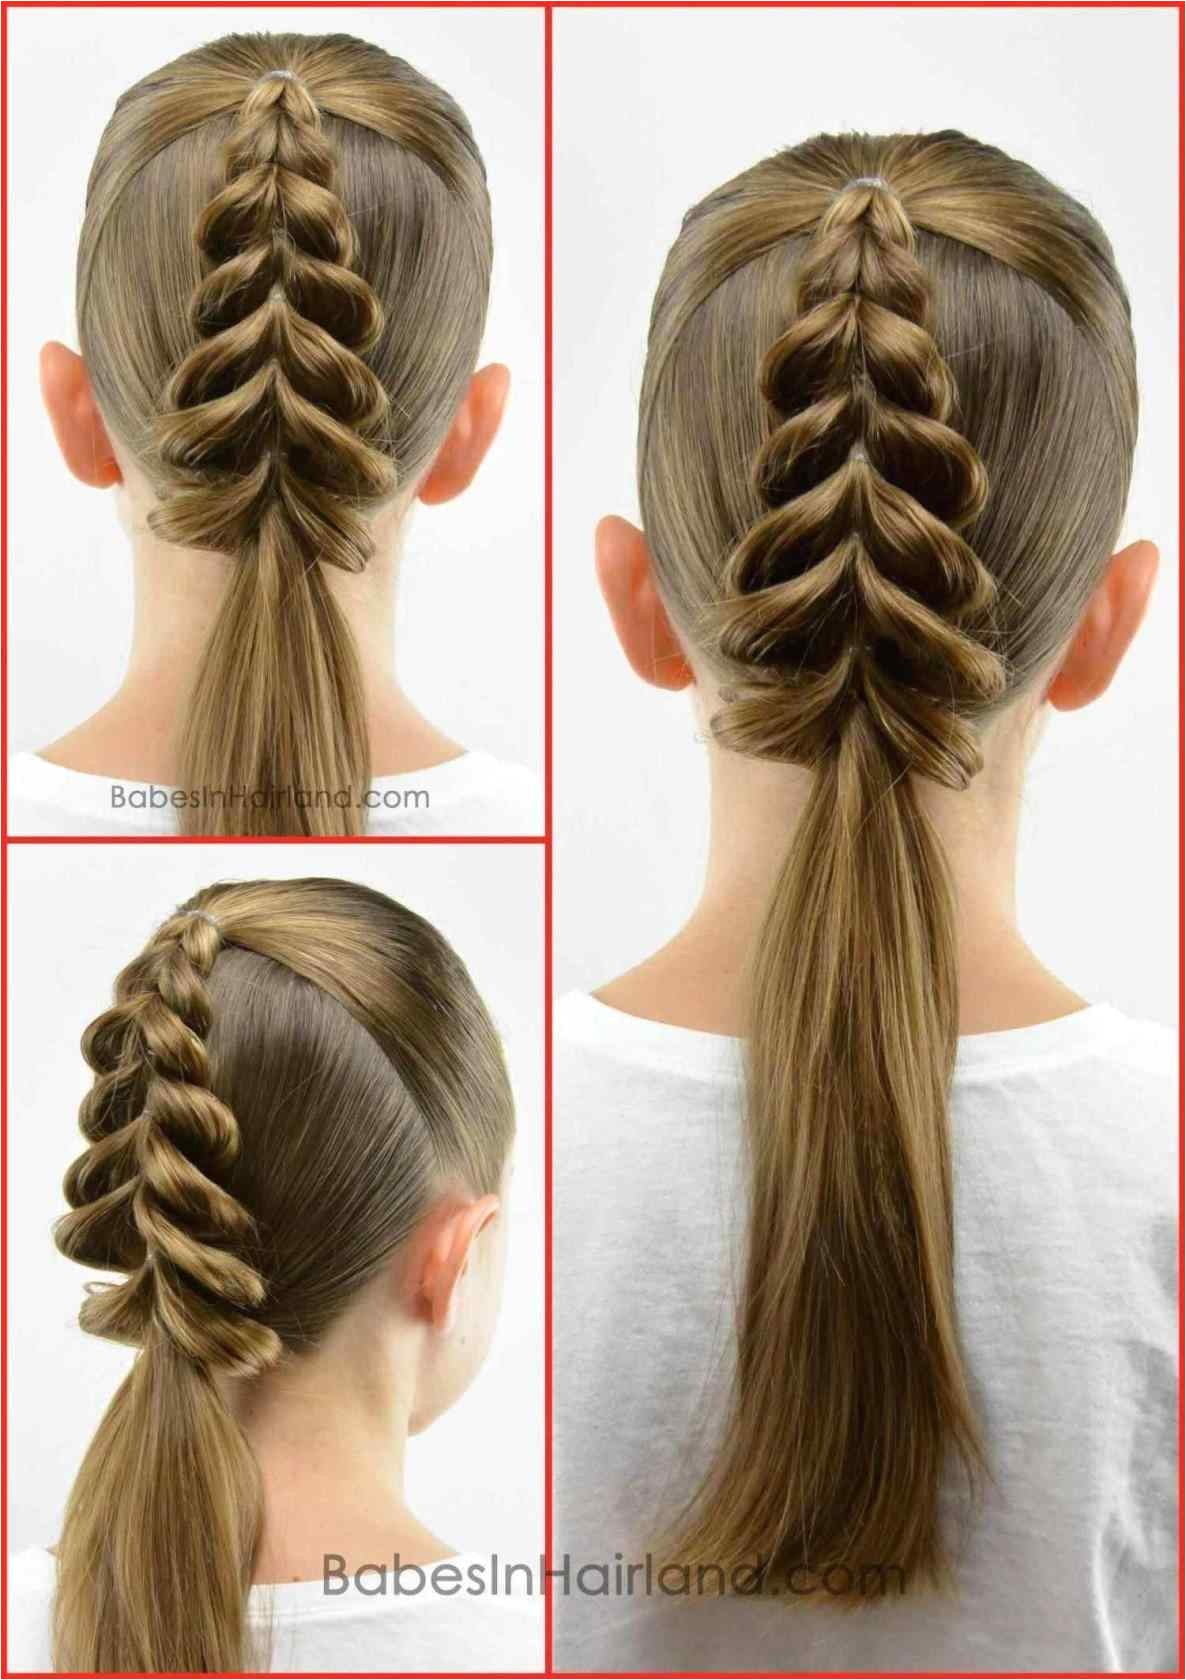 easy braided hairstyles to do at home step by